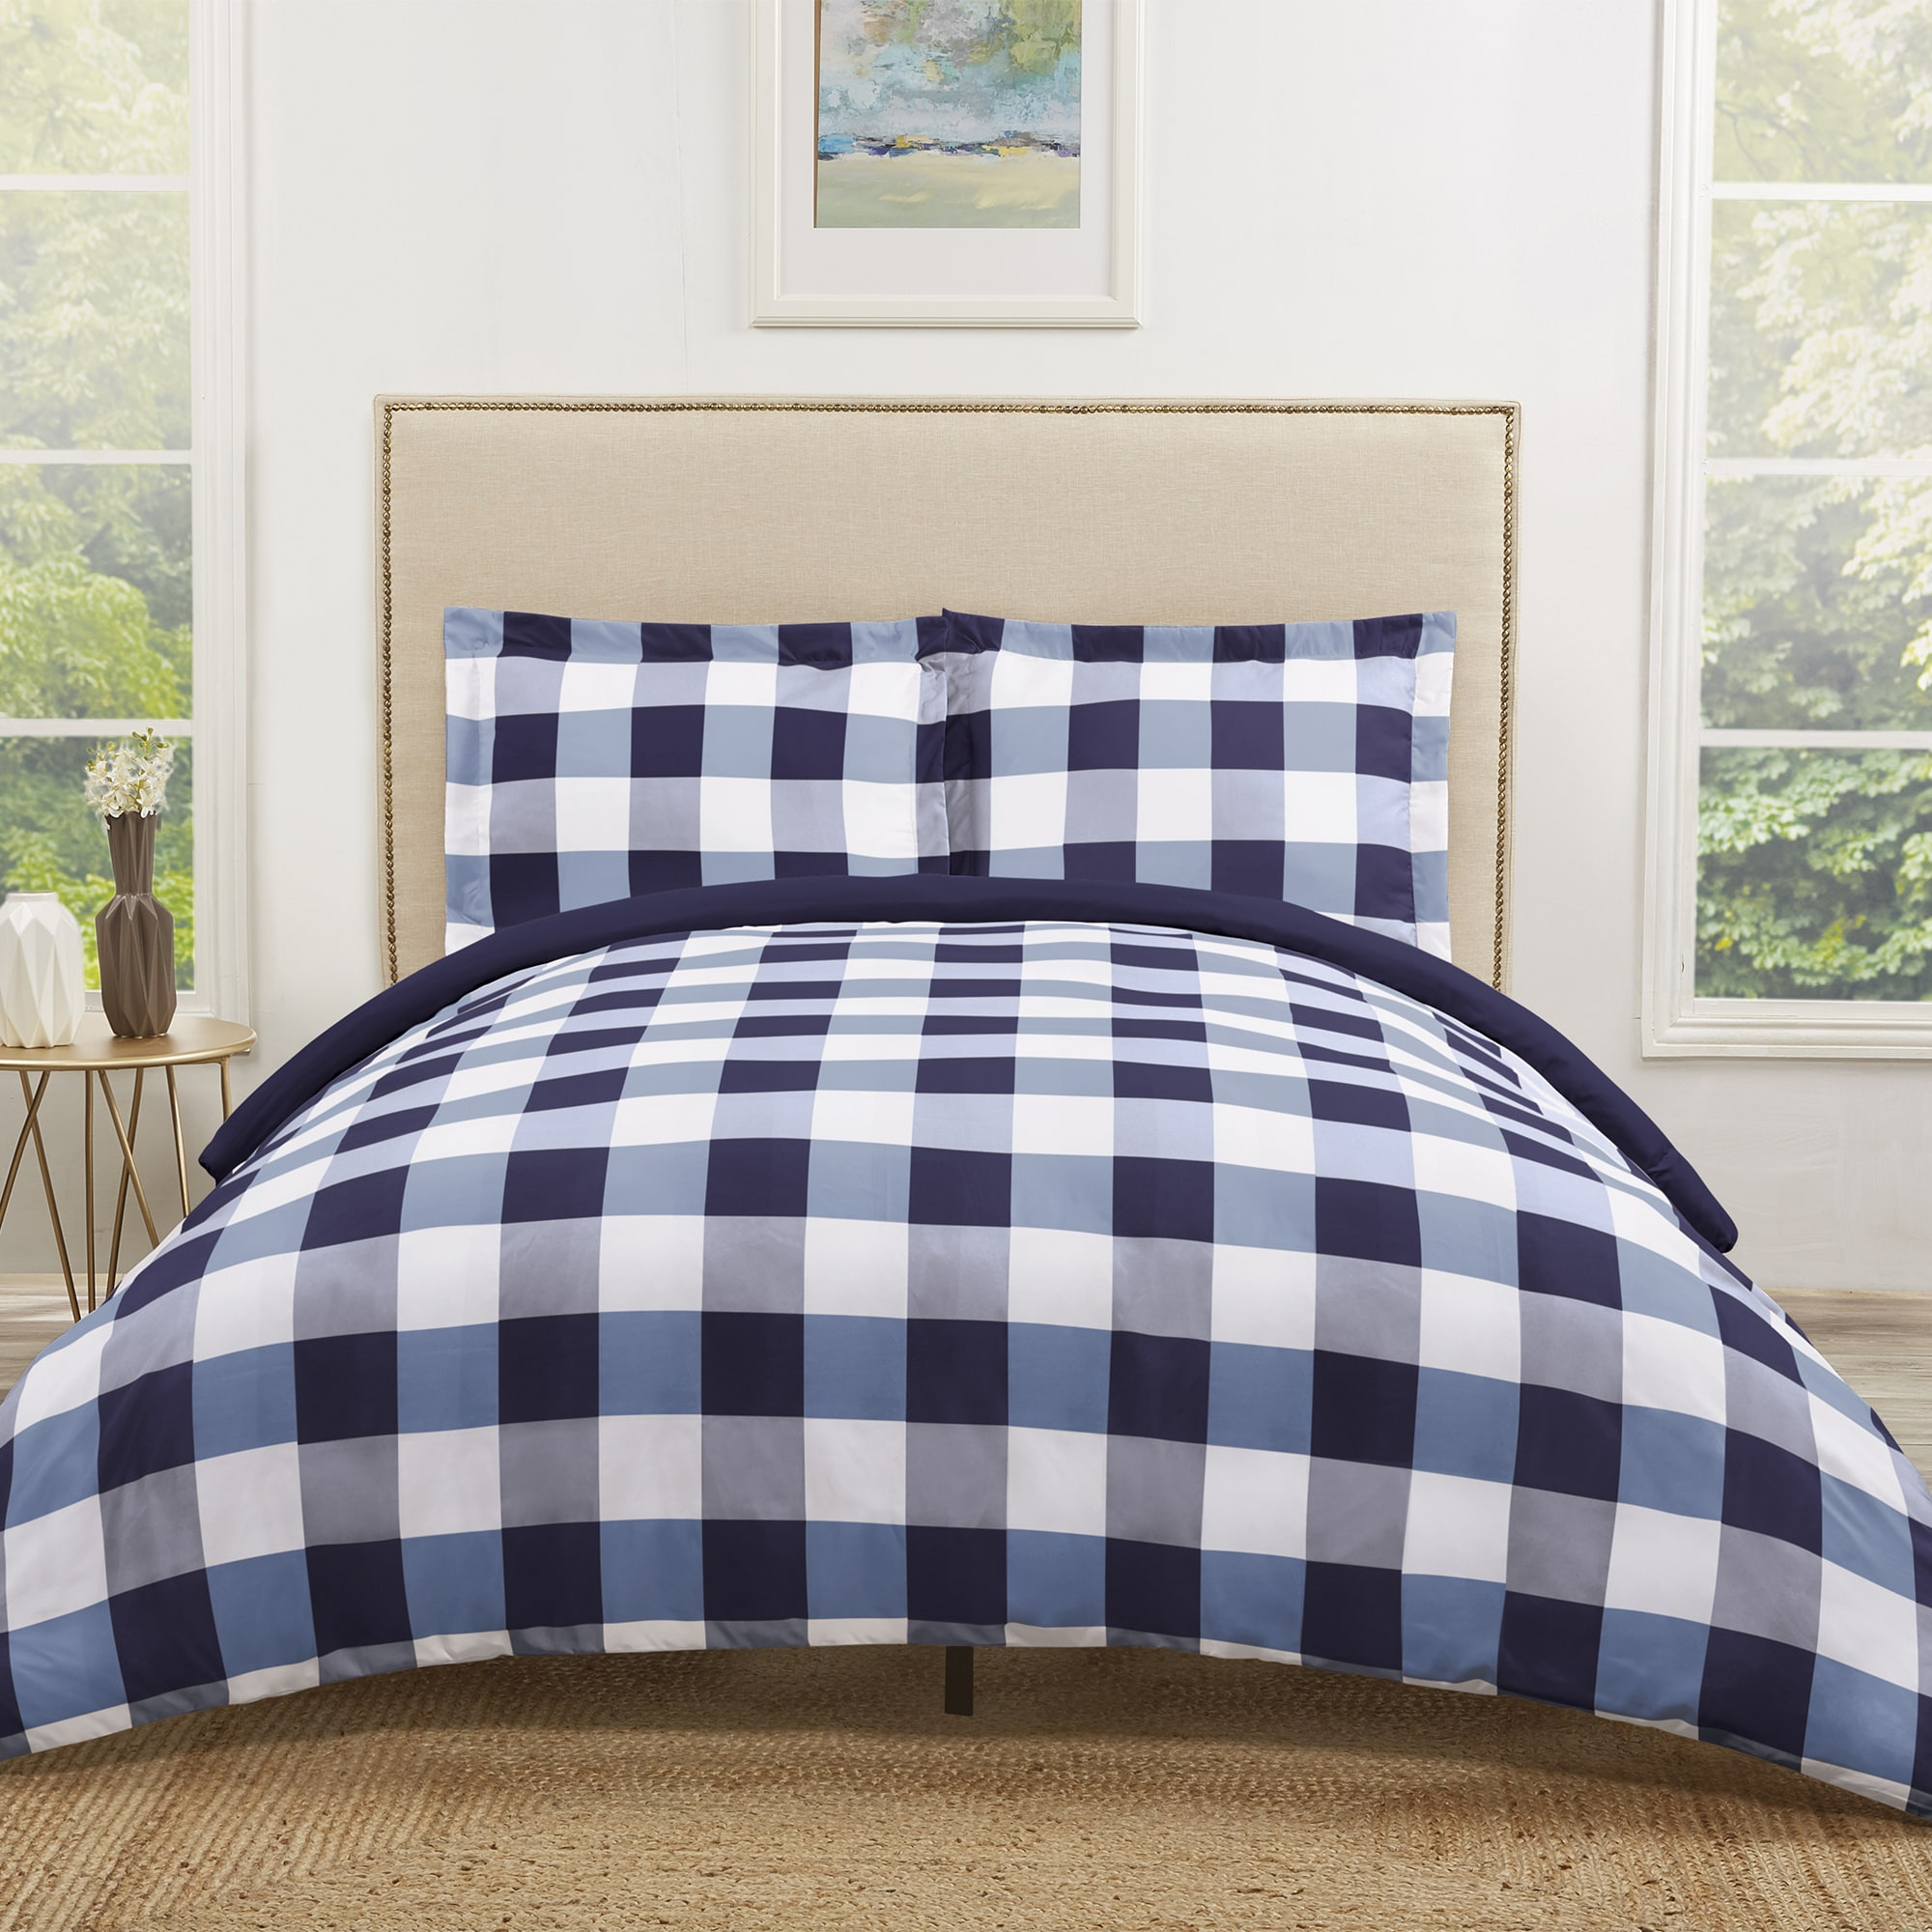 spa bliss check pin buffalo collection designer custom farmhouse comforter bedding guest gingham blue